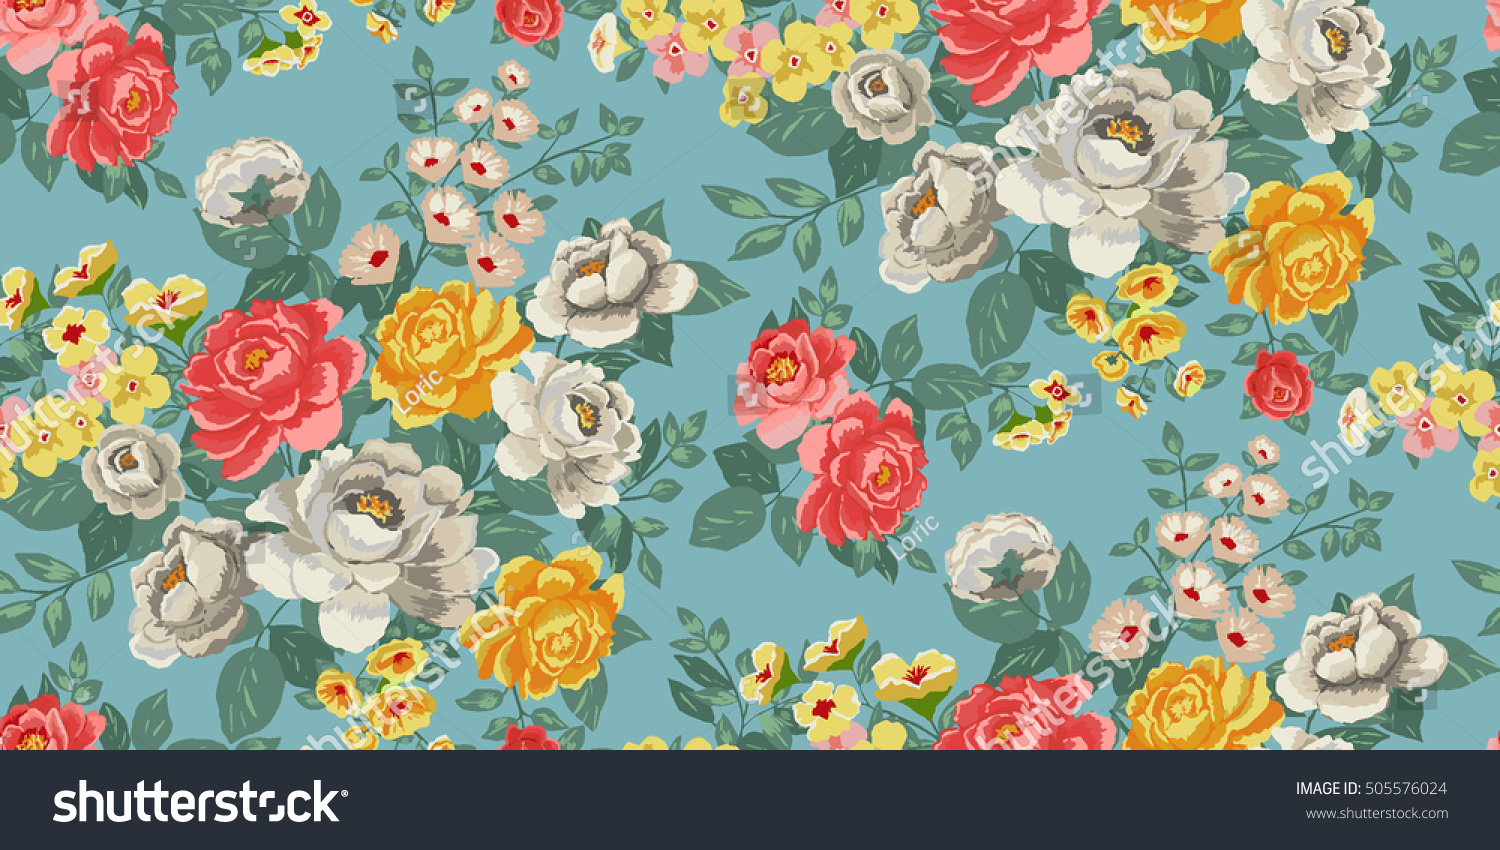 Classic Wallpaper Seamless Vintage Flower Pattern Stock Vector Royalty Free 505576024